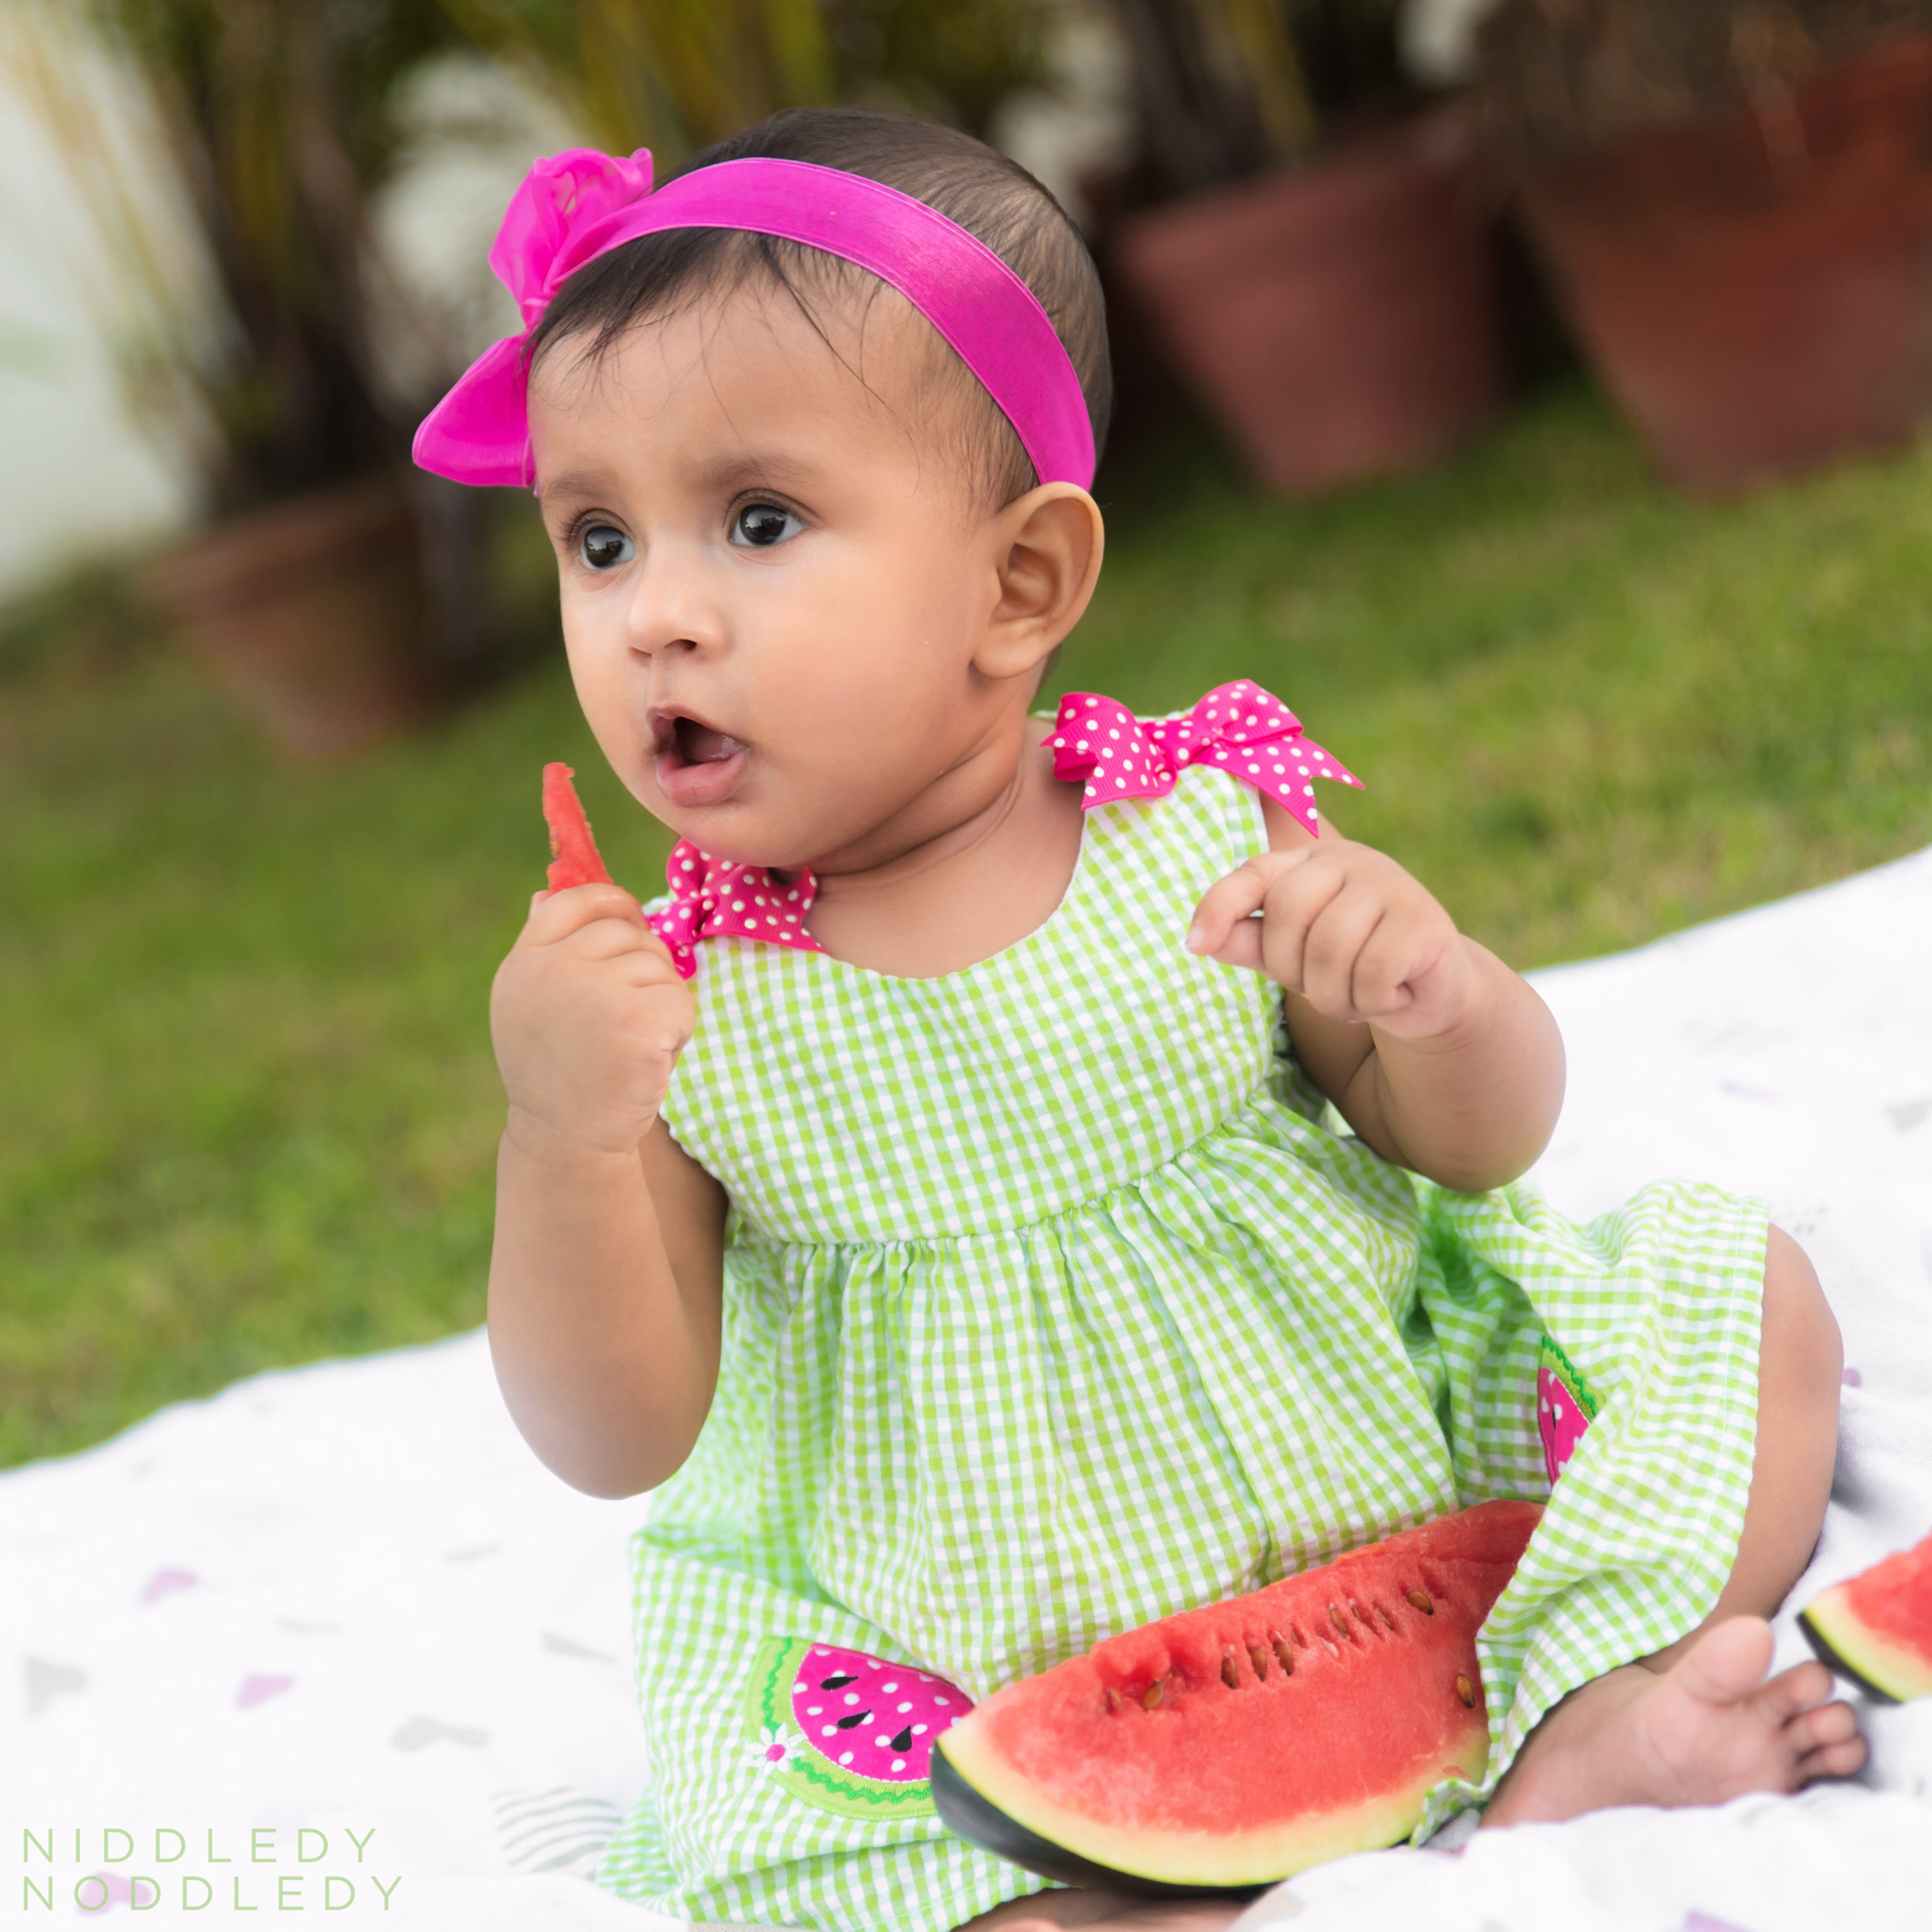 Anaisha Baby Photoshoot ❤ NiddledyNoddledy.com ~ Bumps to Babies Photography, Kolkata - 71.jpg